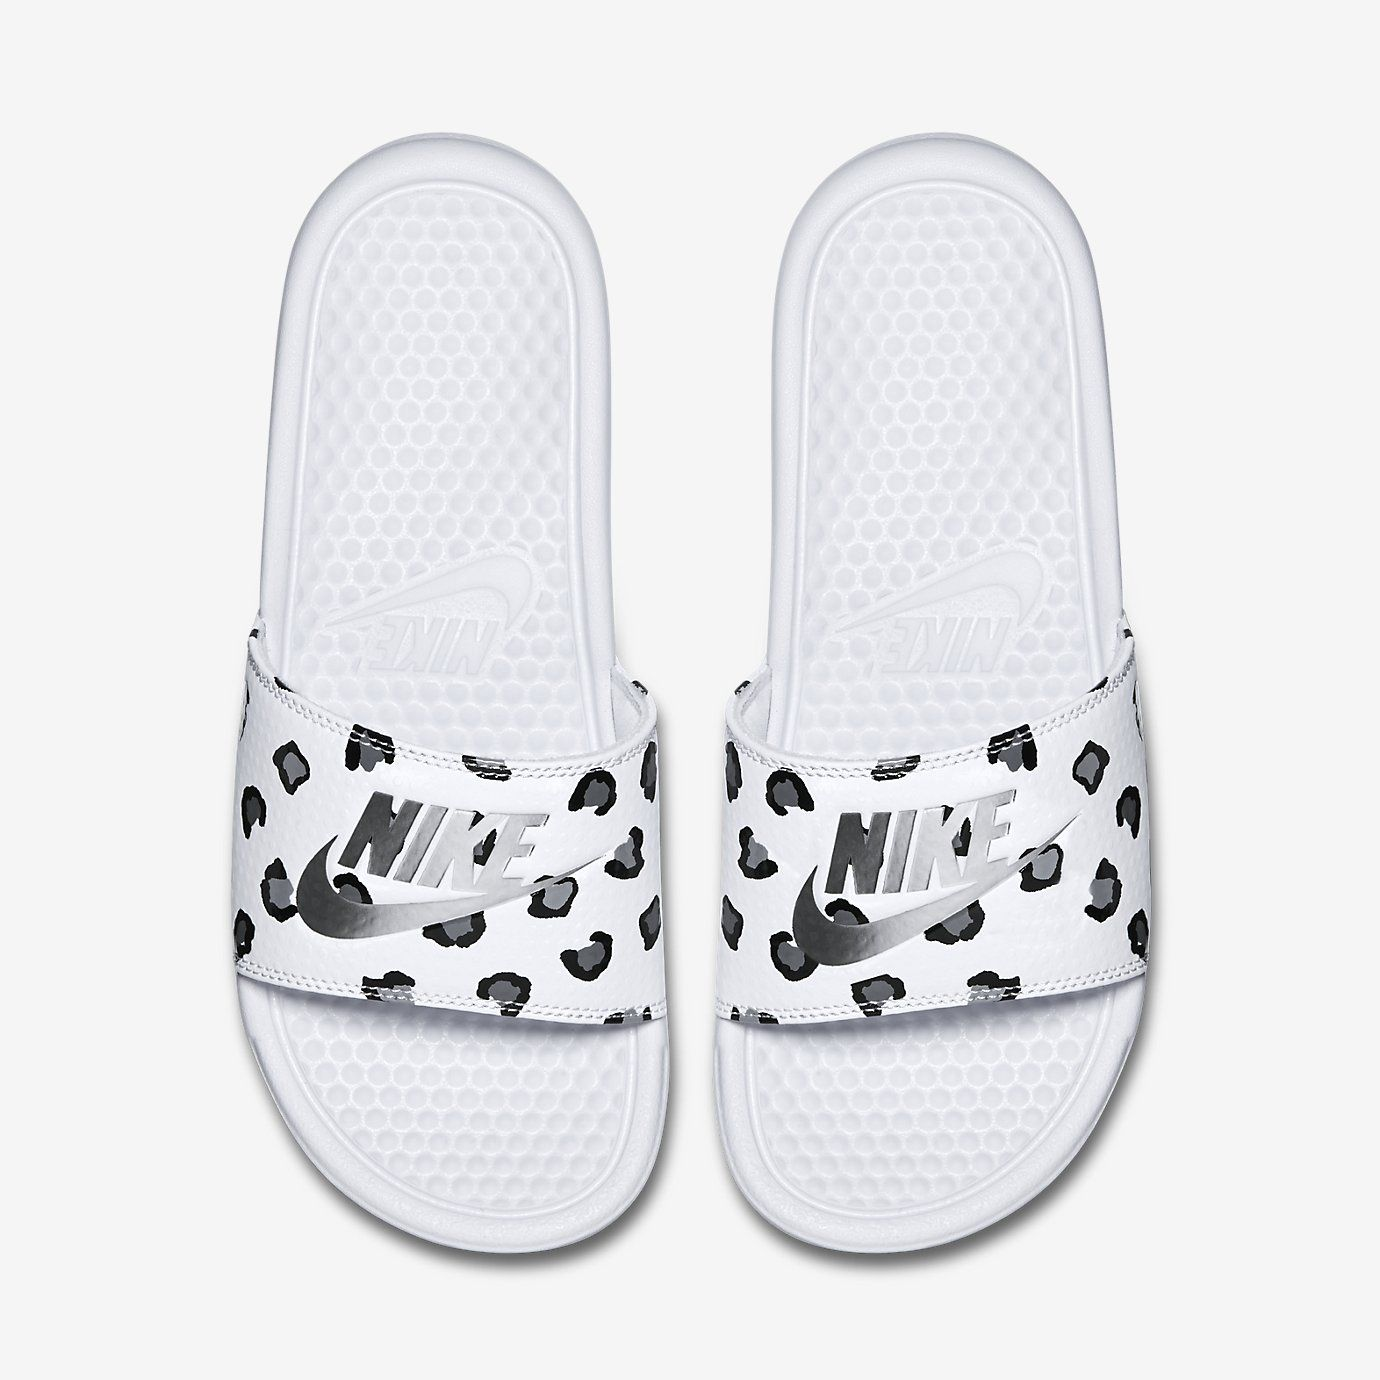 cd3592bbd55 Nike Benassi Just Do It Print Women s Slide. Nike Store UK £20 ...